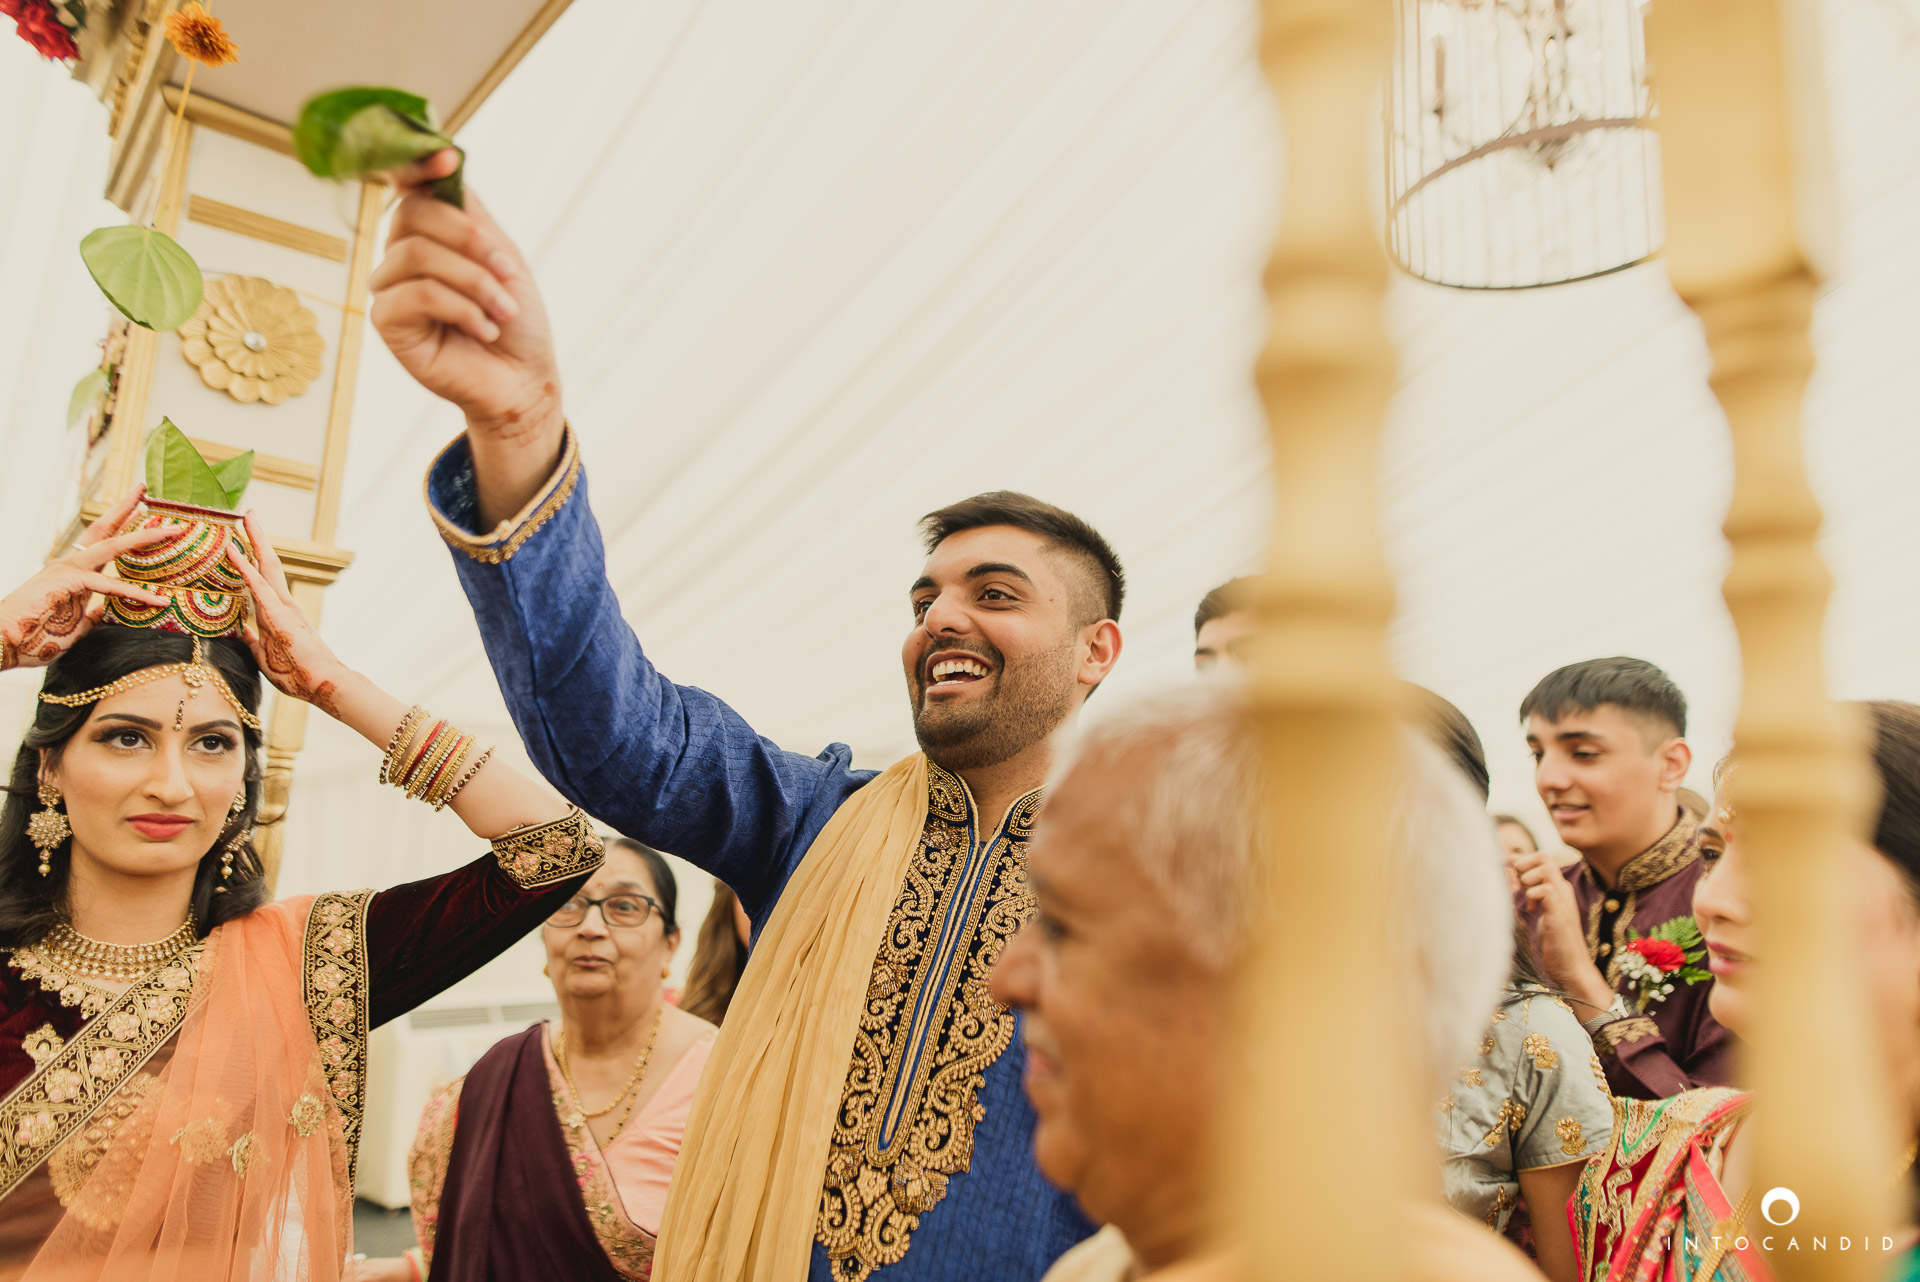 London_Wedding_Photographer_Intocandid_Photography_Ketan & Manasvi_31.JPG